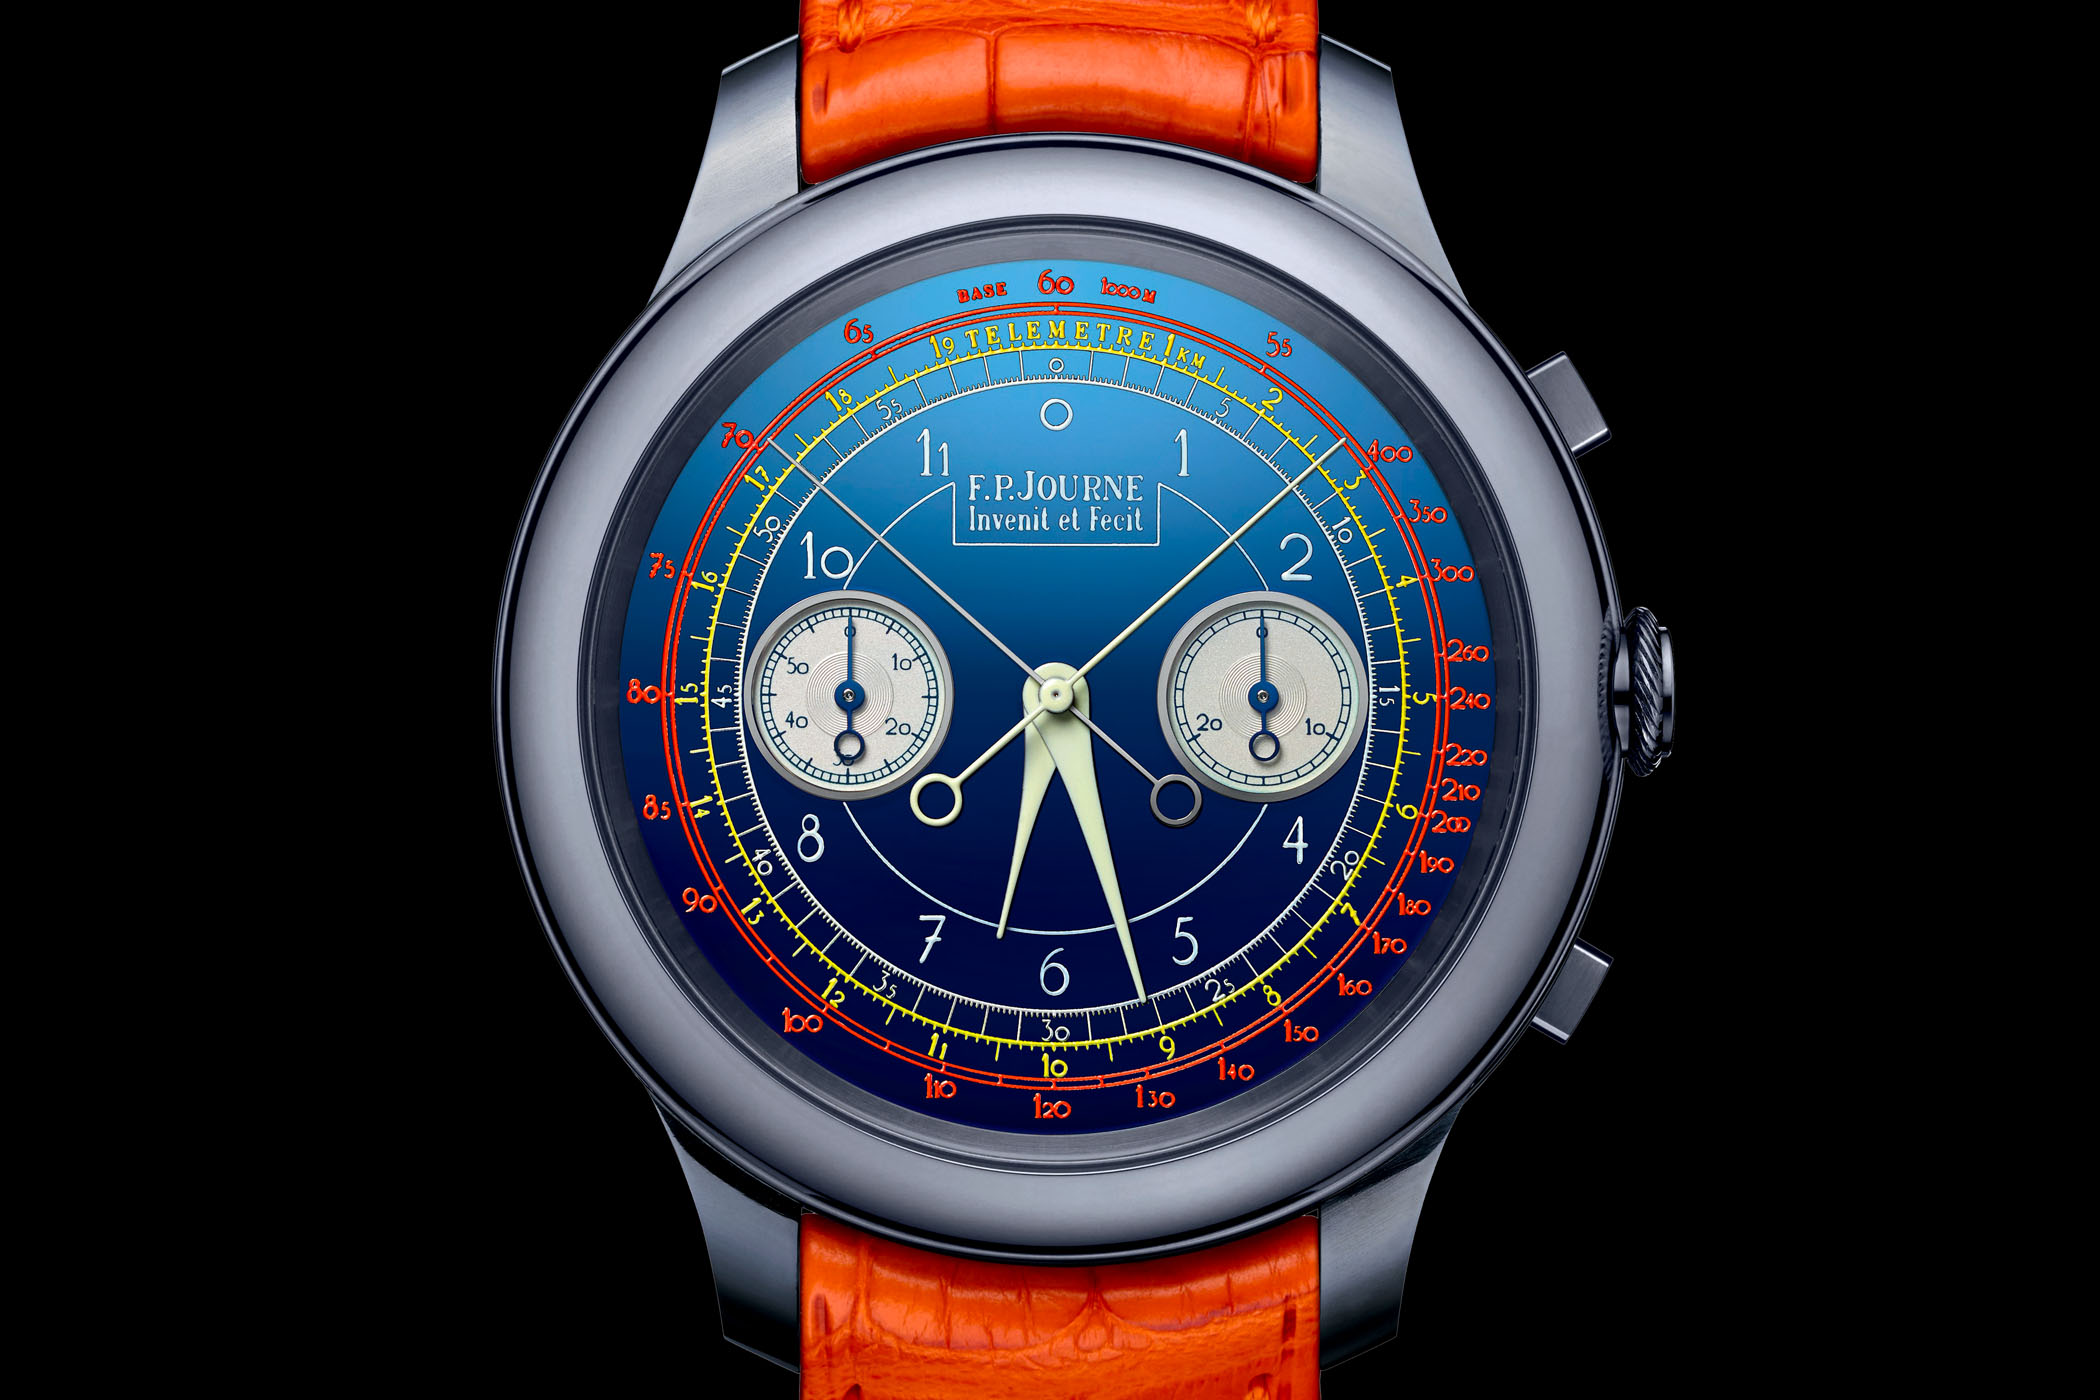 F.P.Journe Chronographe Monopoussoir Rattrapante Only Watch 2017